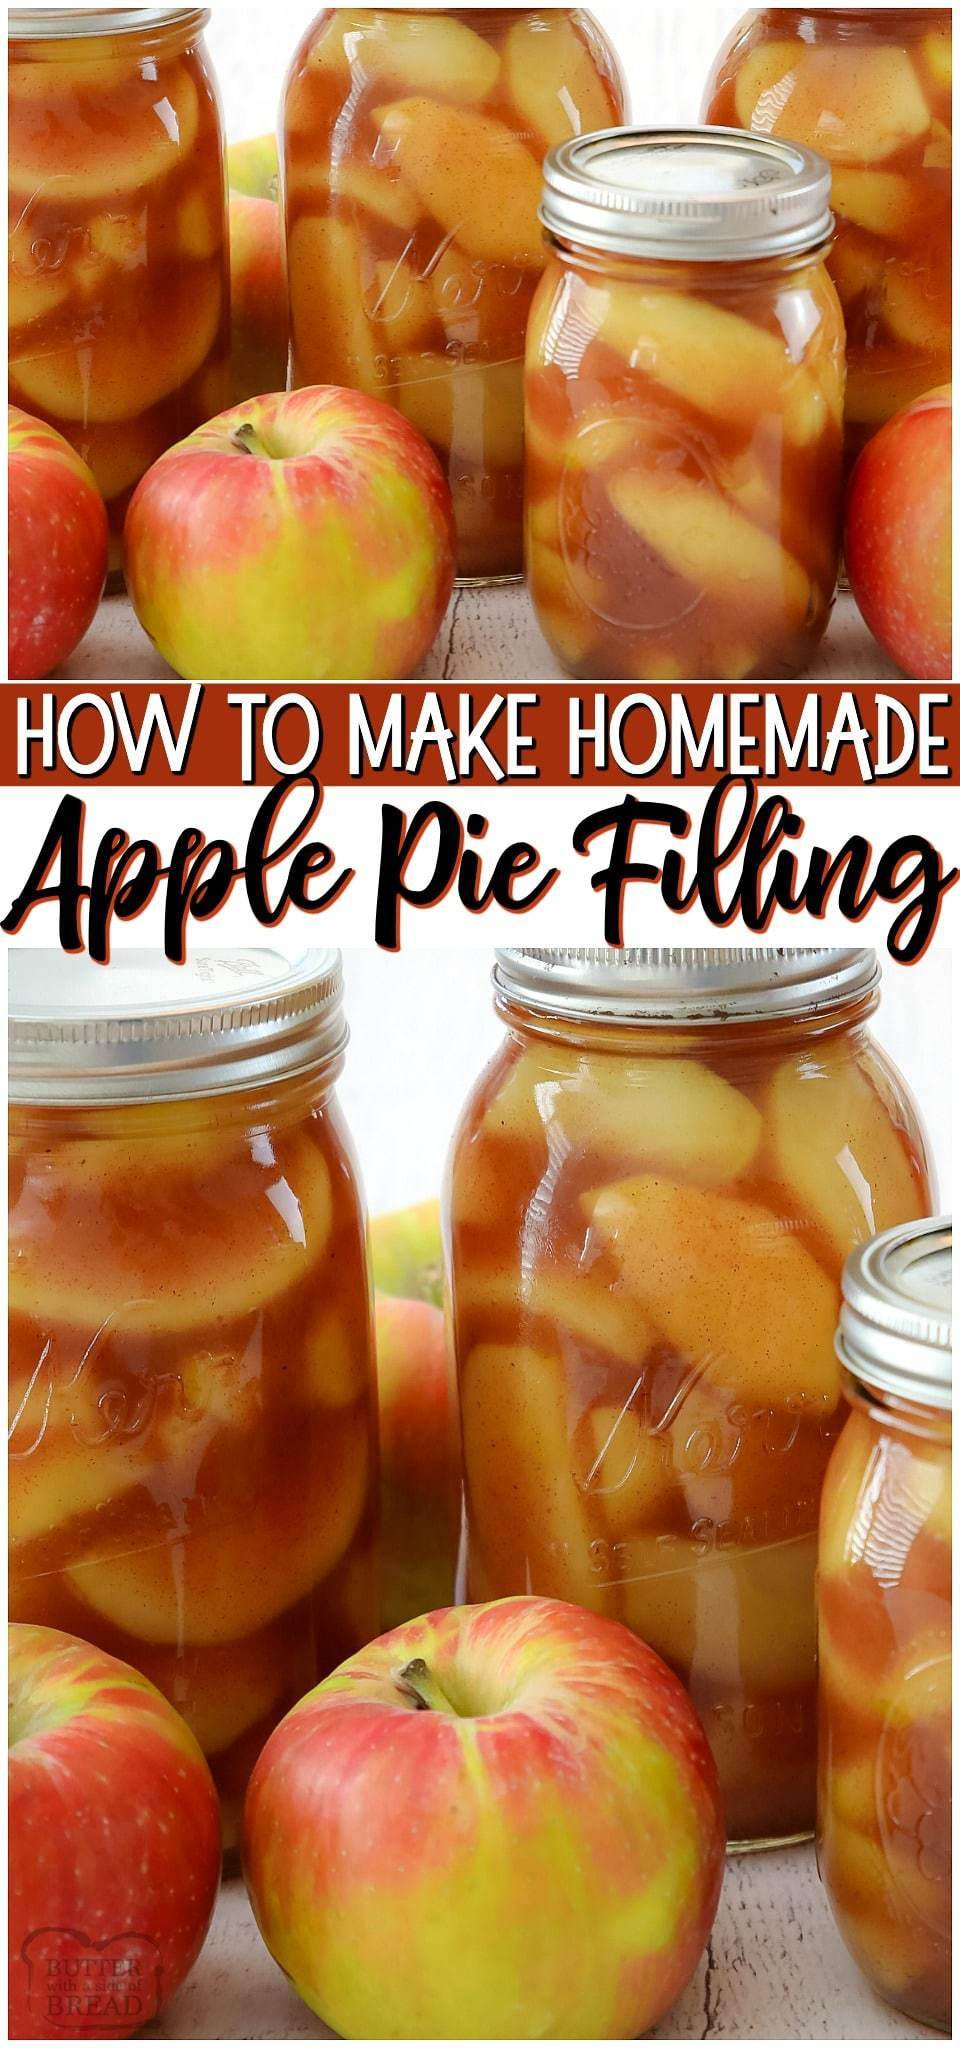 Learn how to make apple pie filling with this simple method & recipe! This is a low sugar apple pie filling so that the flavor of the apples really shine. Apple Pie Filling can be used in so many desserts and is a great way to use fresh apples when they're in season.